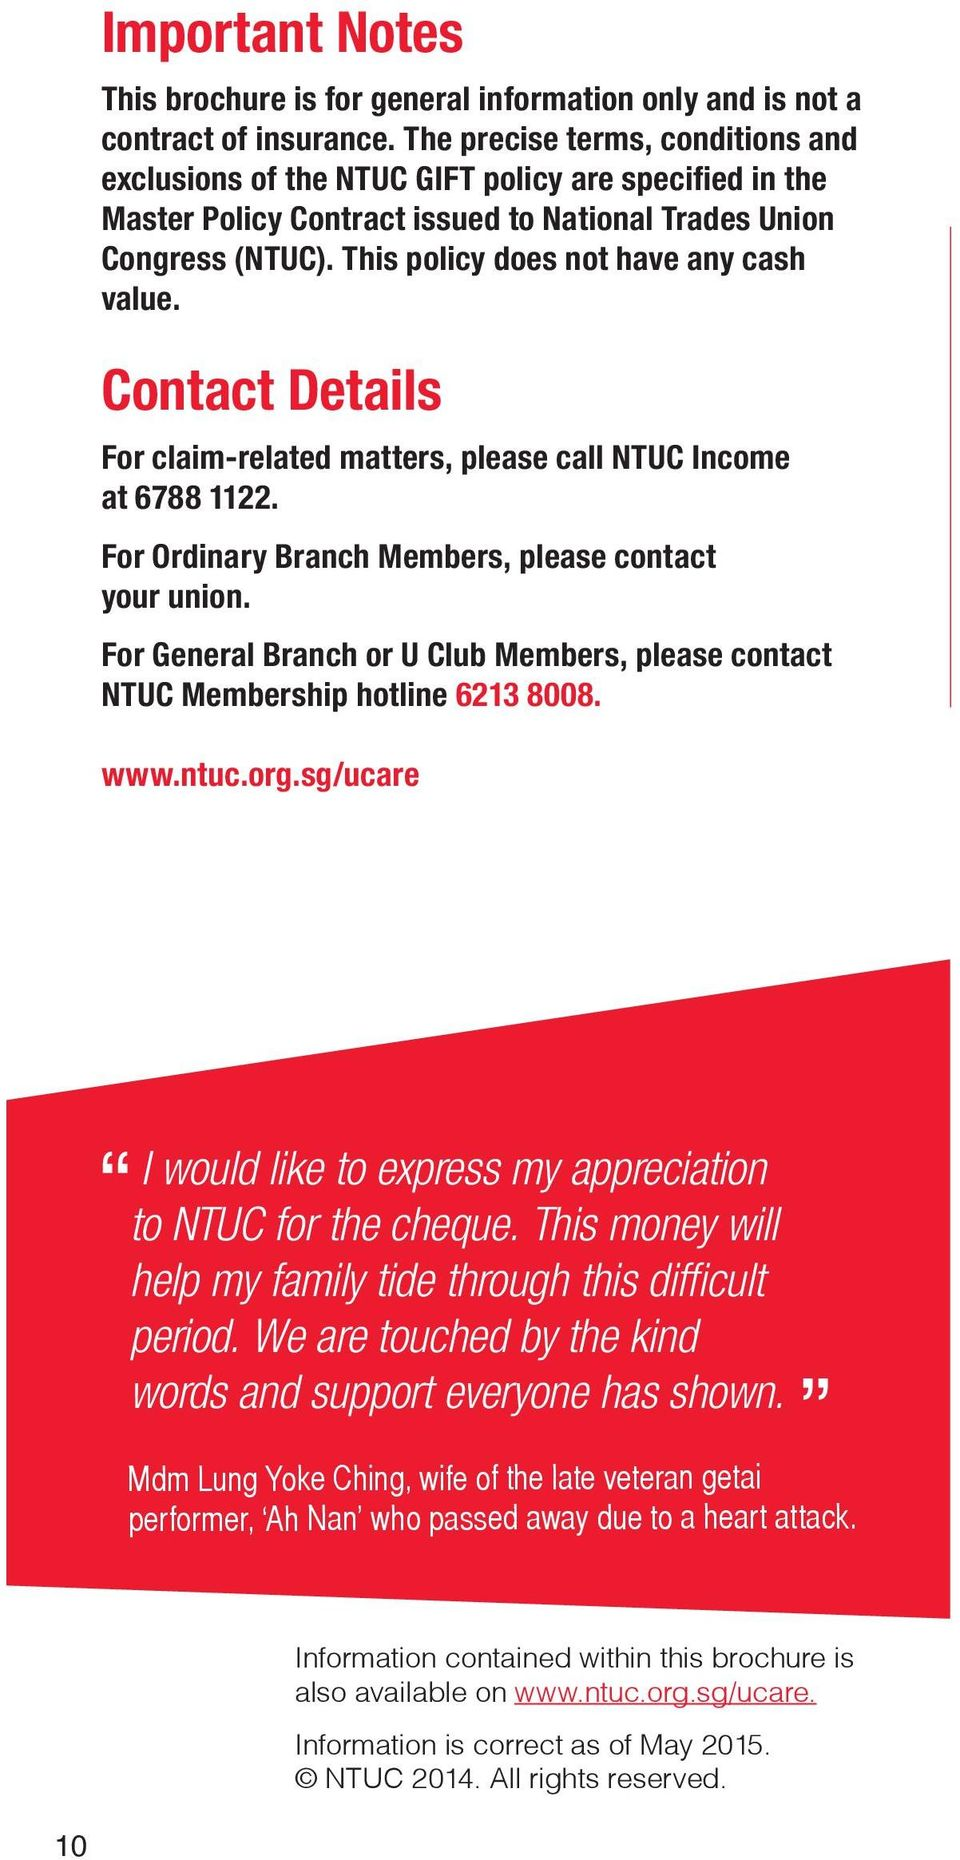 NTUC GIFT  Group Term Life Insurance For Trade Union Members